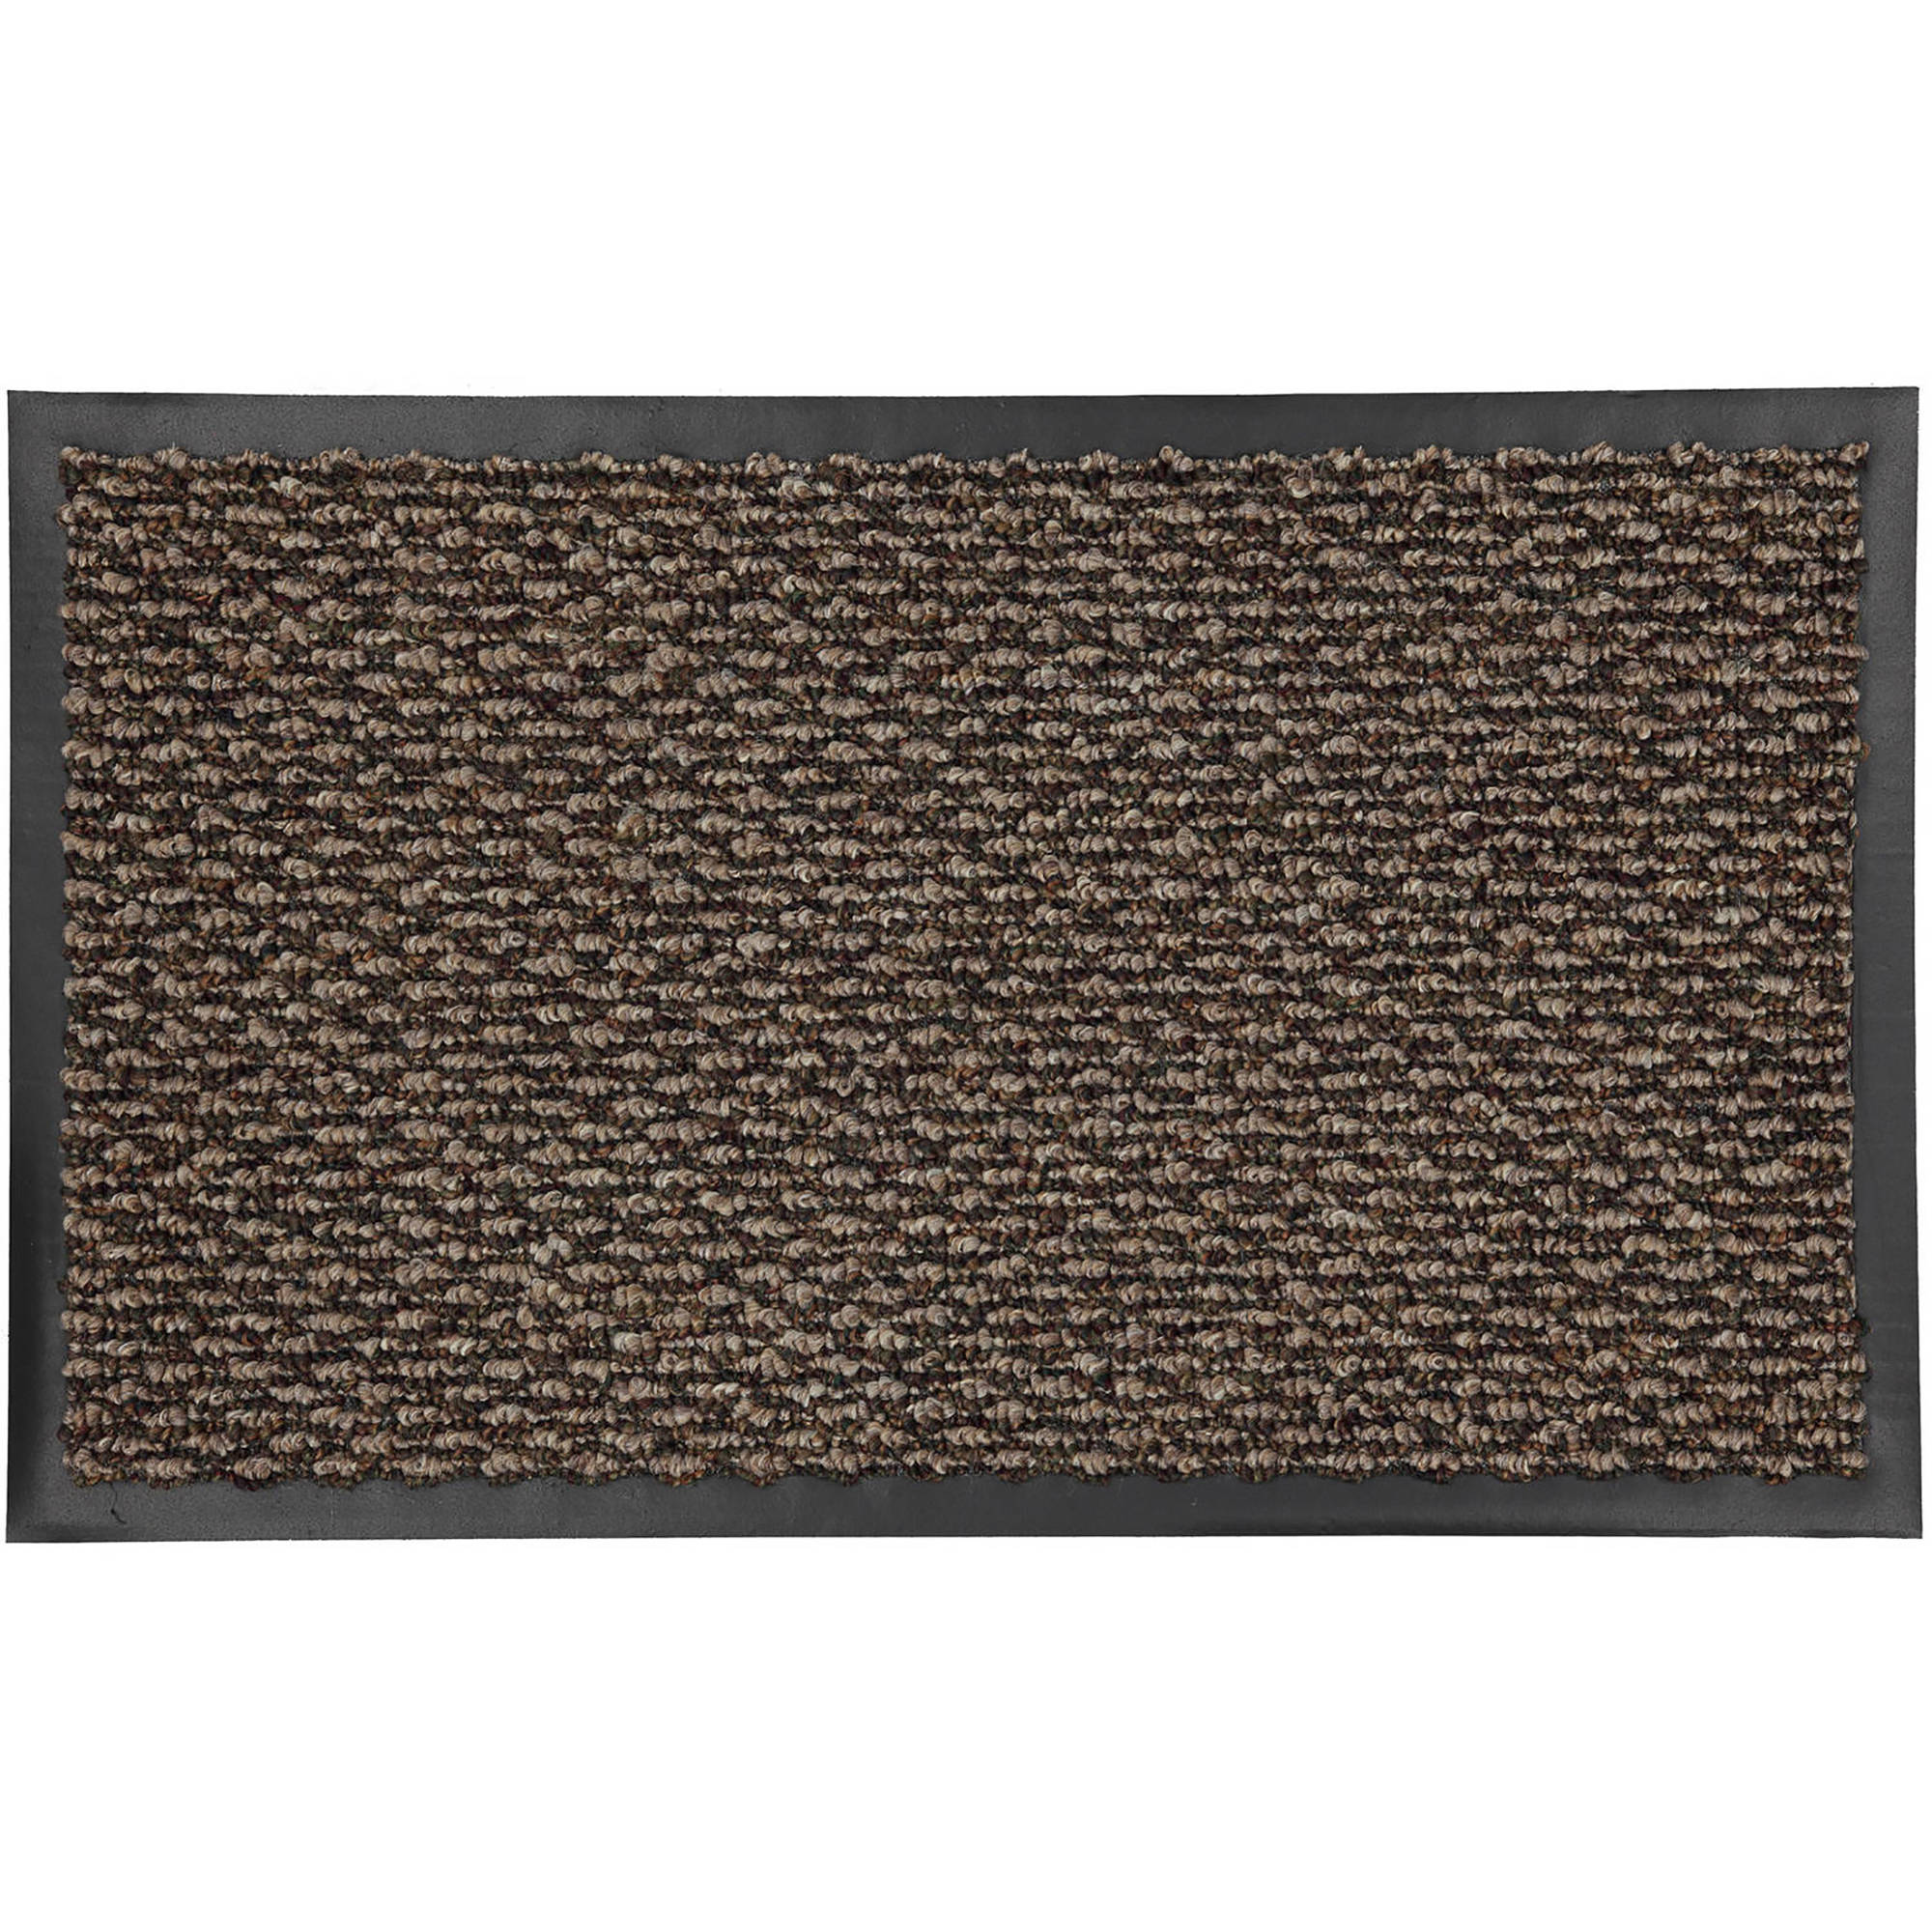 Office entry door mats - Office Entry Door Mats 13